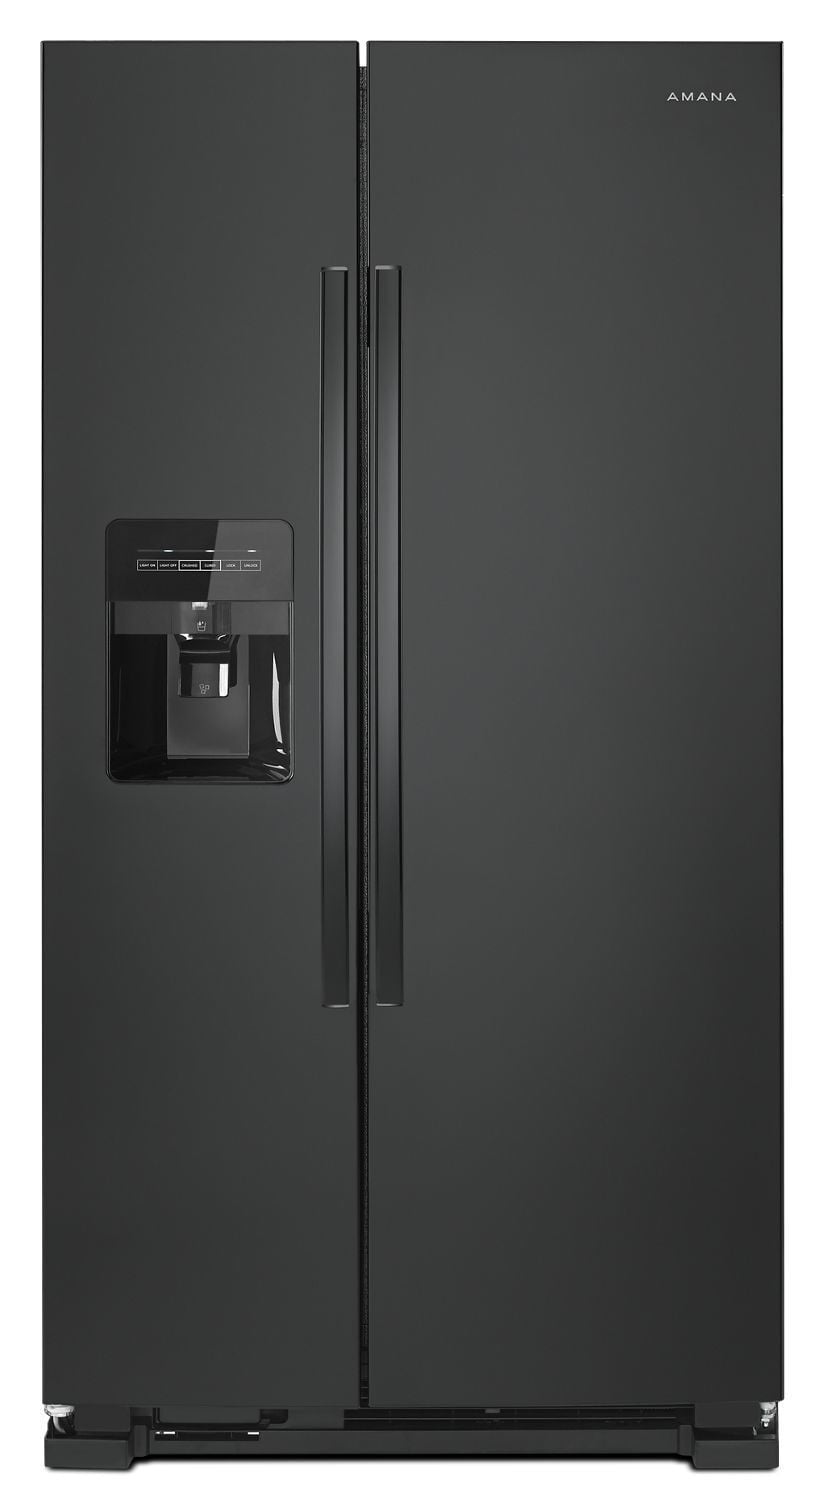 Load image into Gallery viewer, Amana ASI2575GRB 36-Inch Side-By-Side Refrigerator With Dual Pad External Ice And Water Dispenser Black